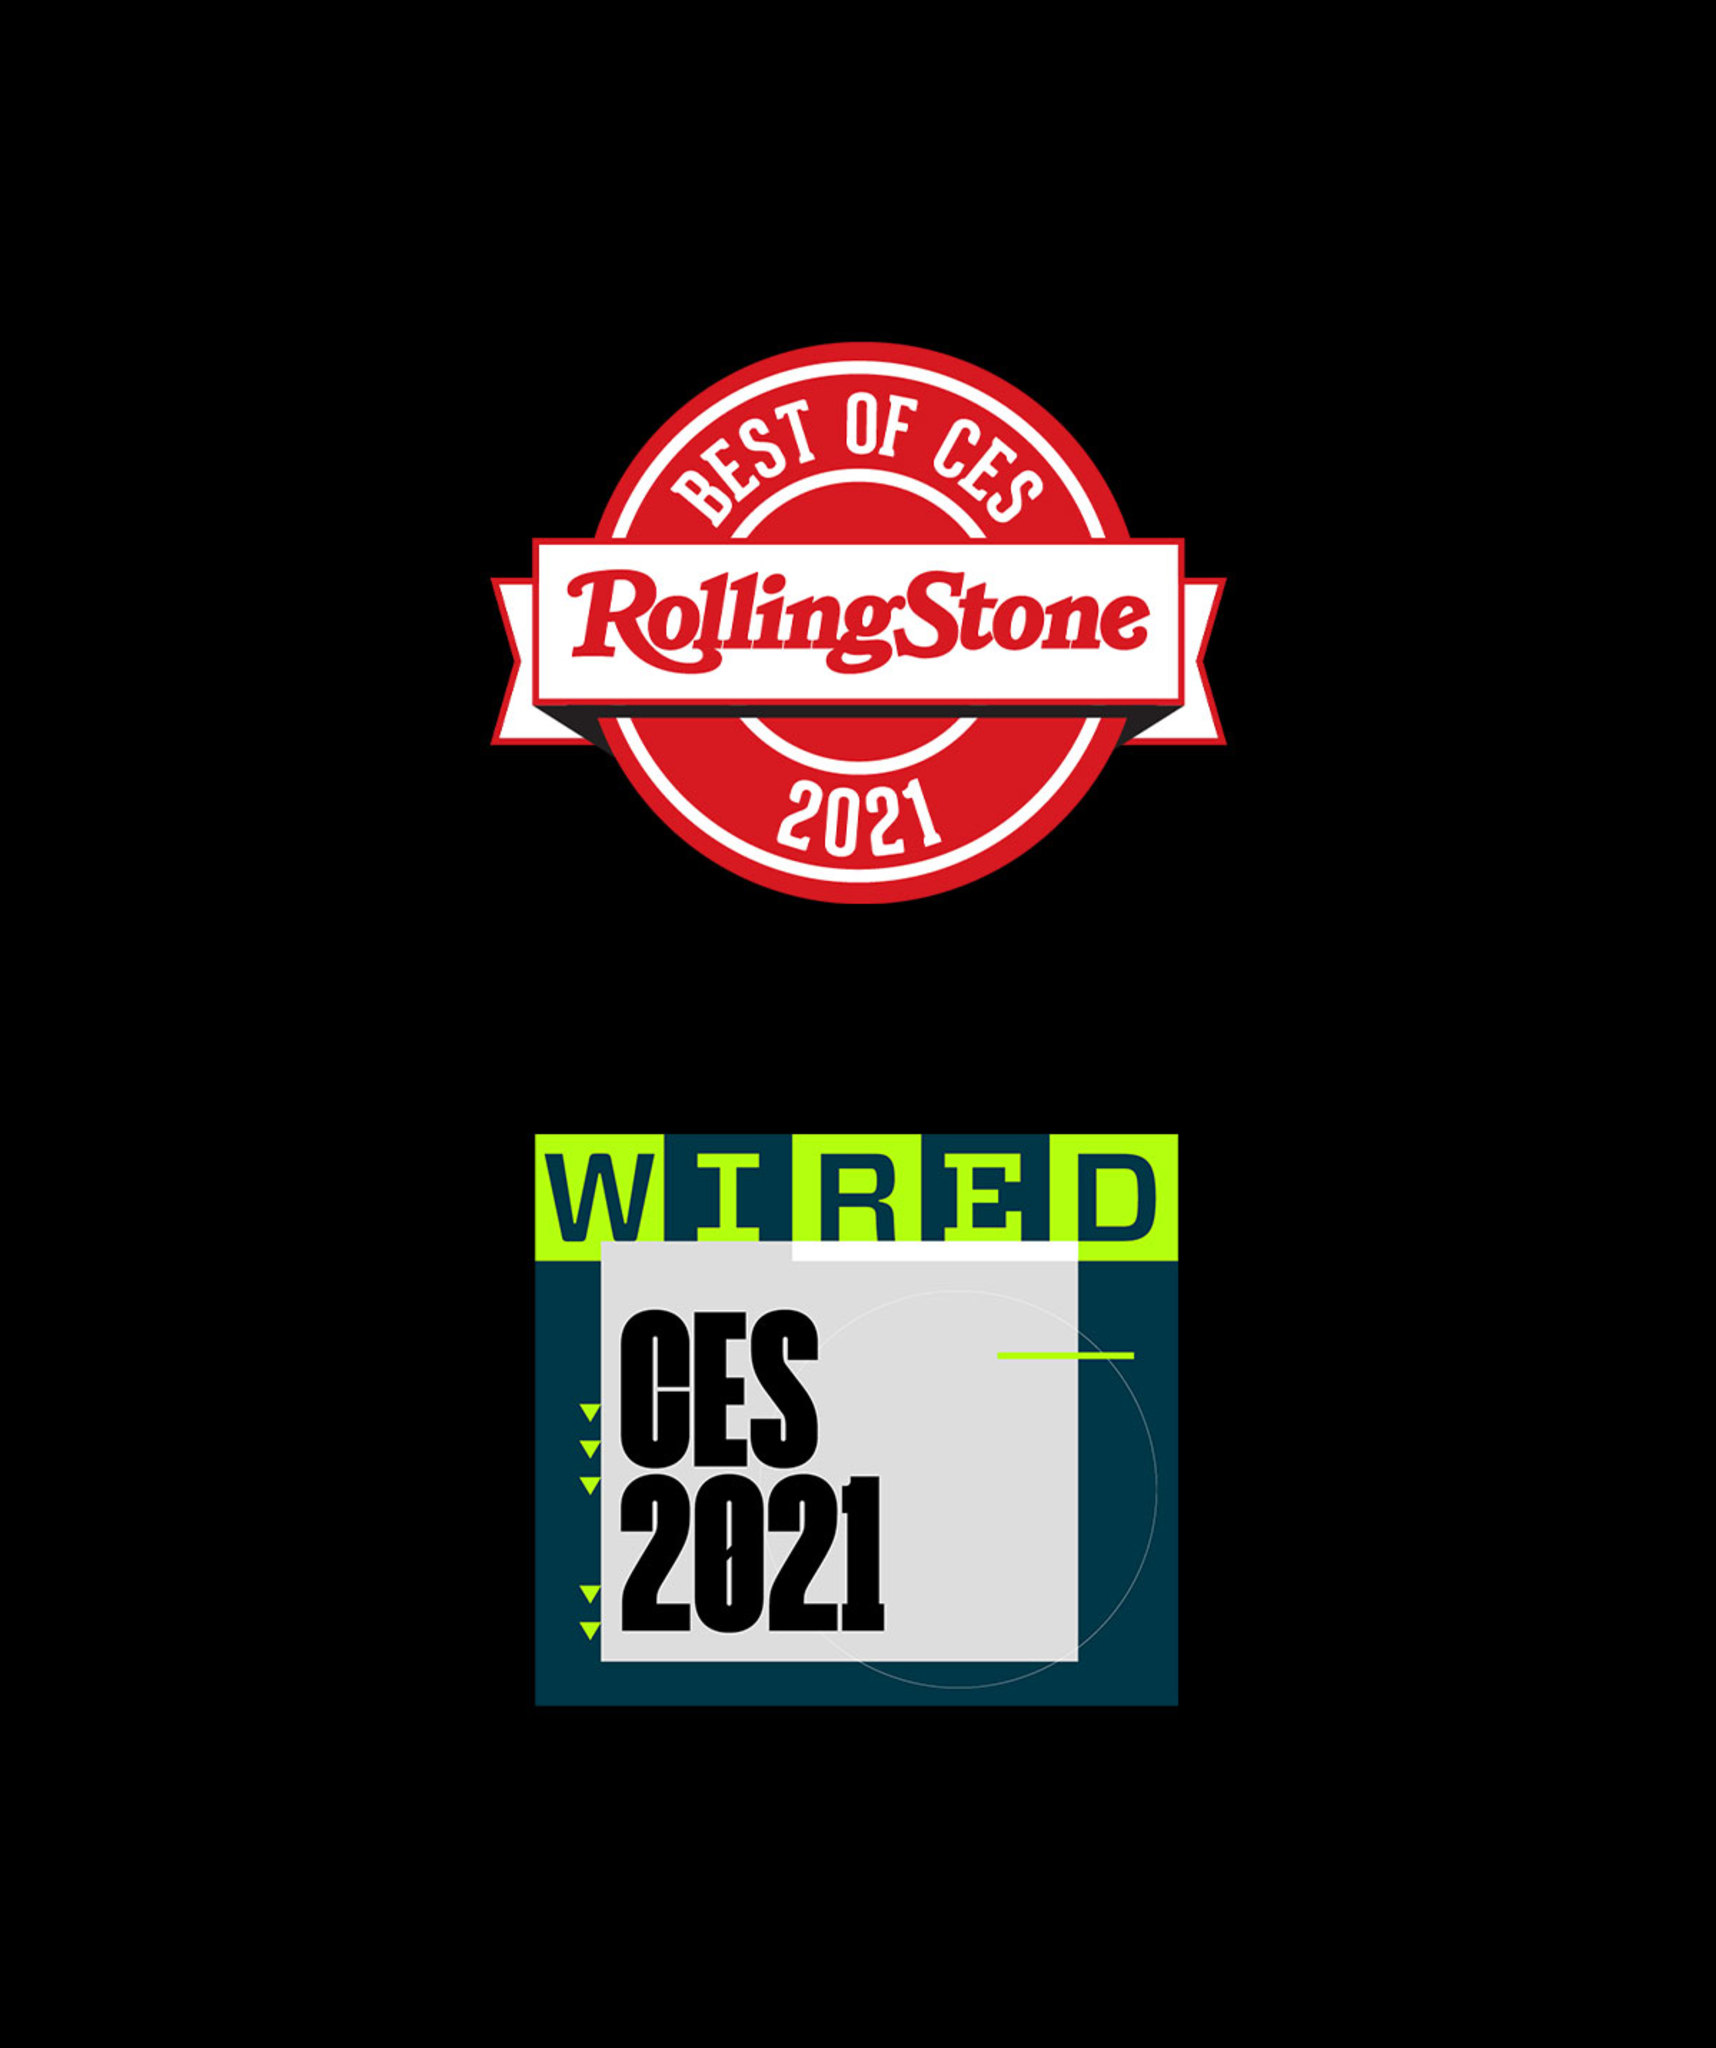 Wired and Rolling Stone awards badges